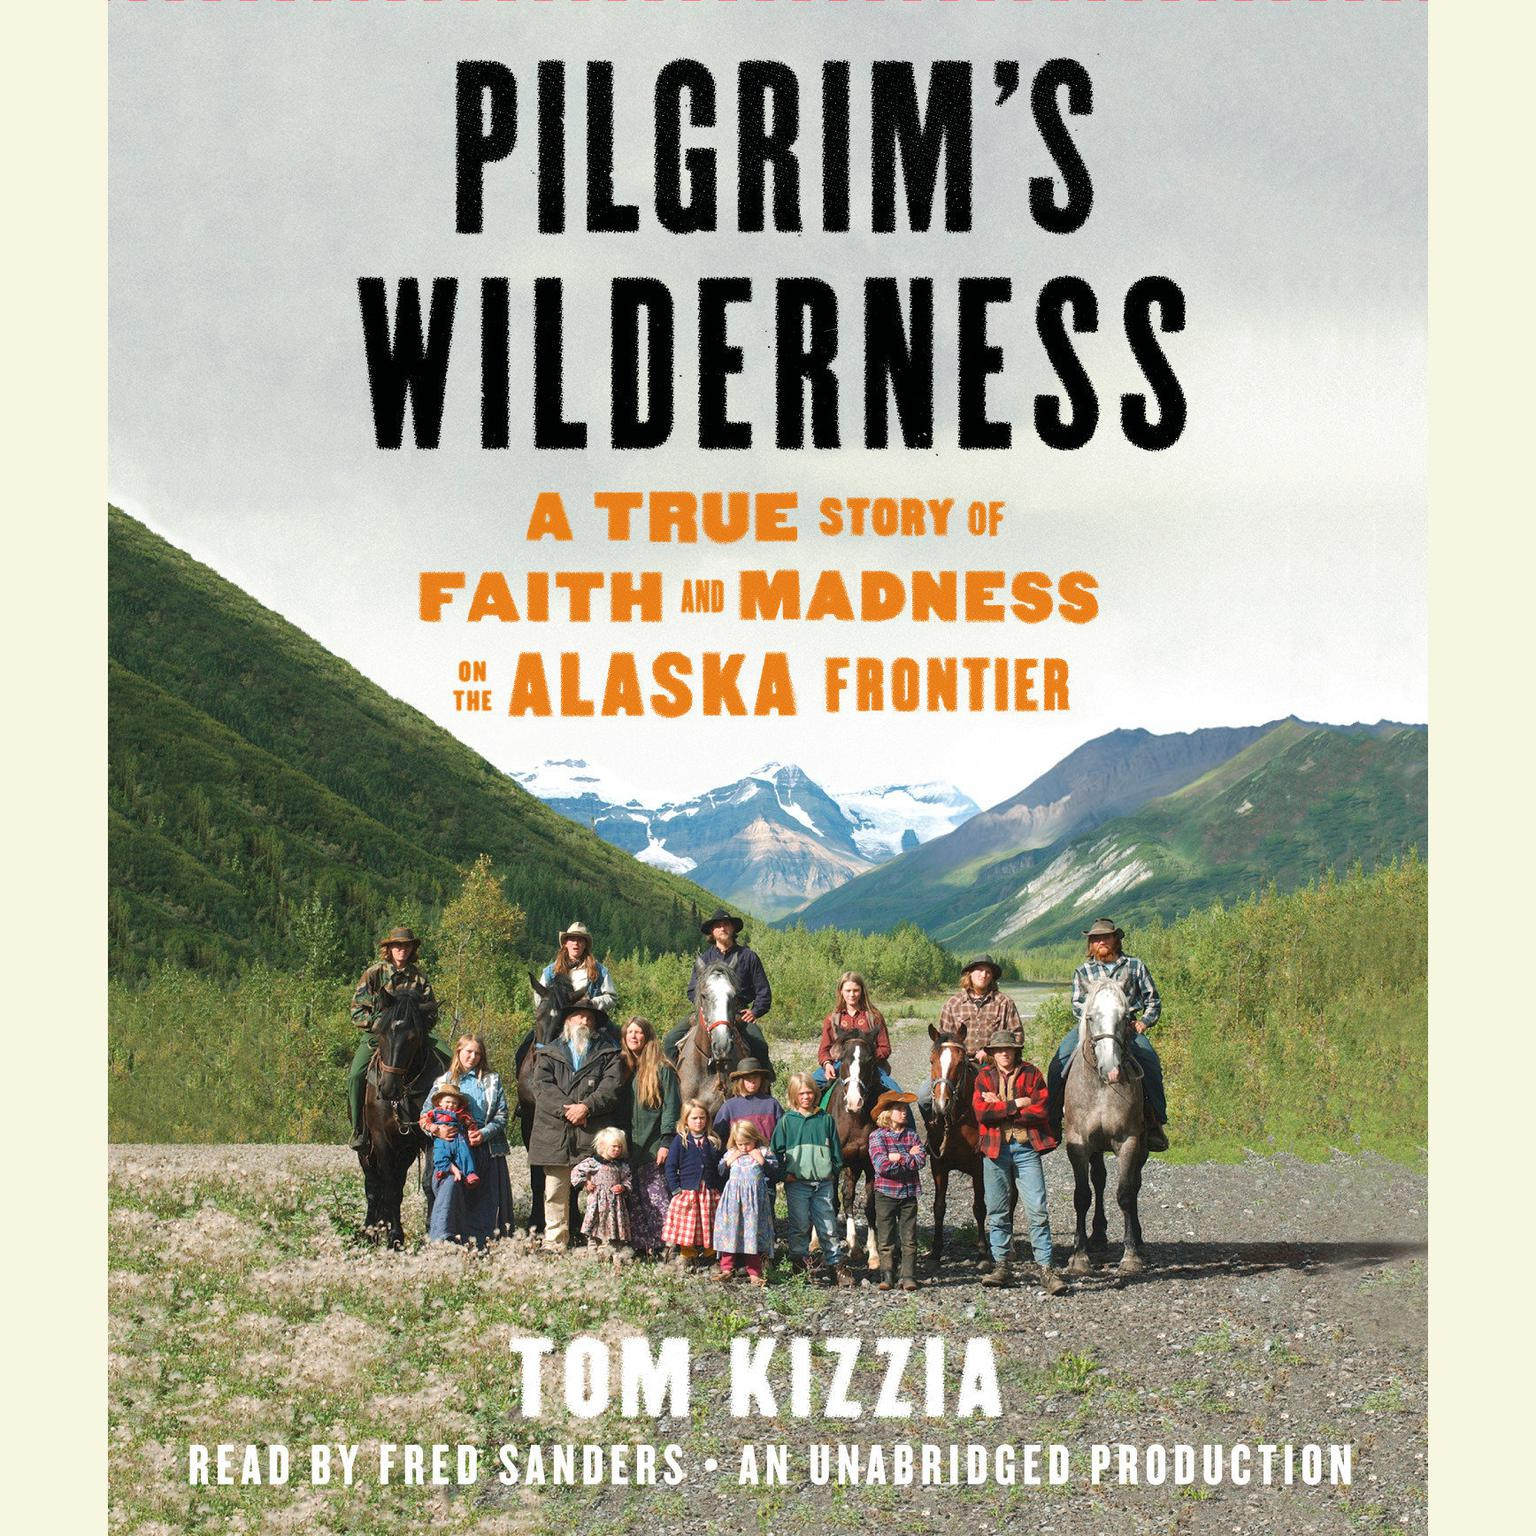 Printable Pilgrim's Wilderness: A True Story of Faith and Madness on the Alaska Frontier Audiobook Cover Art